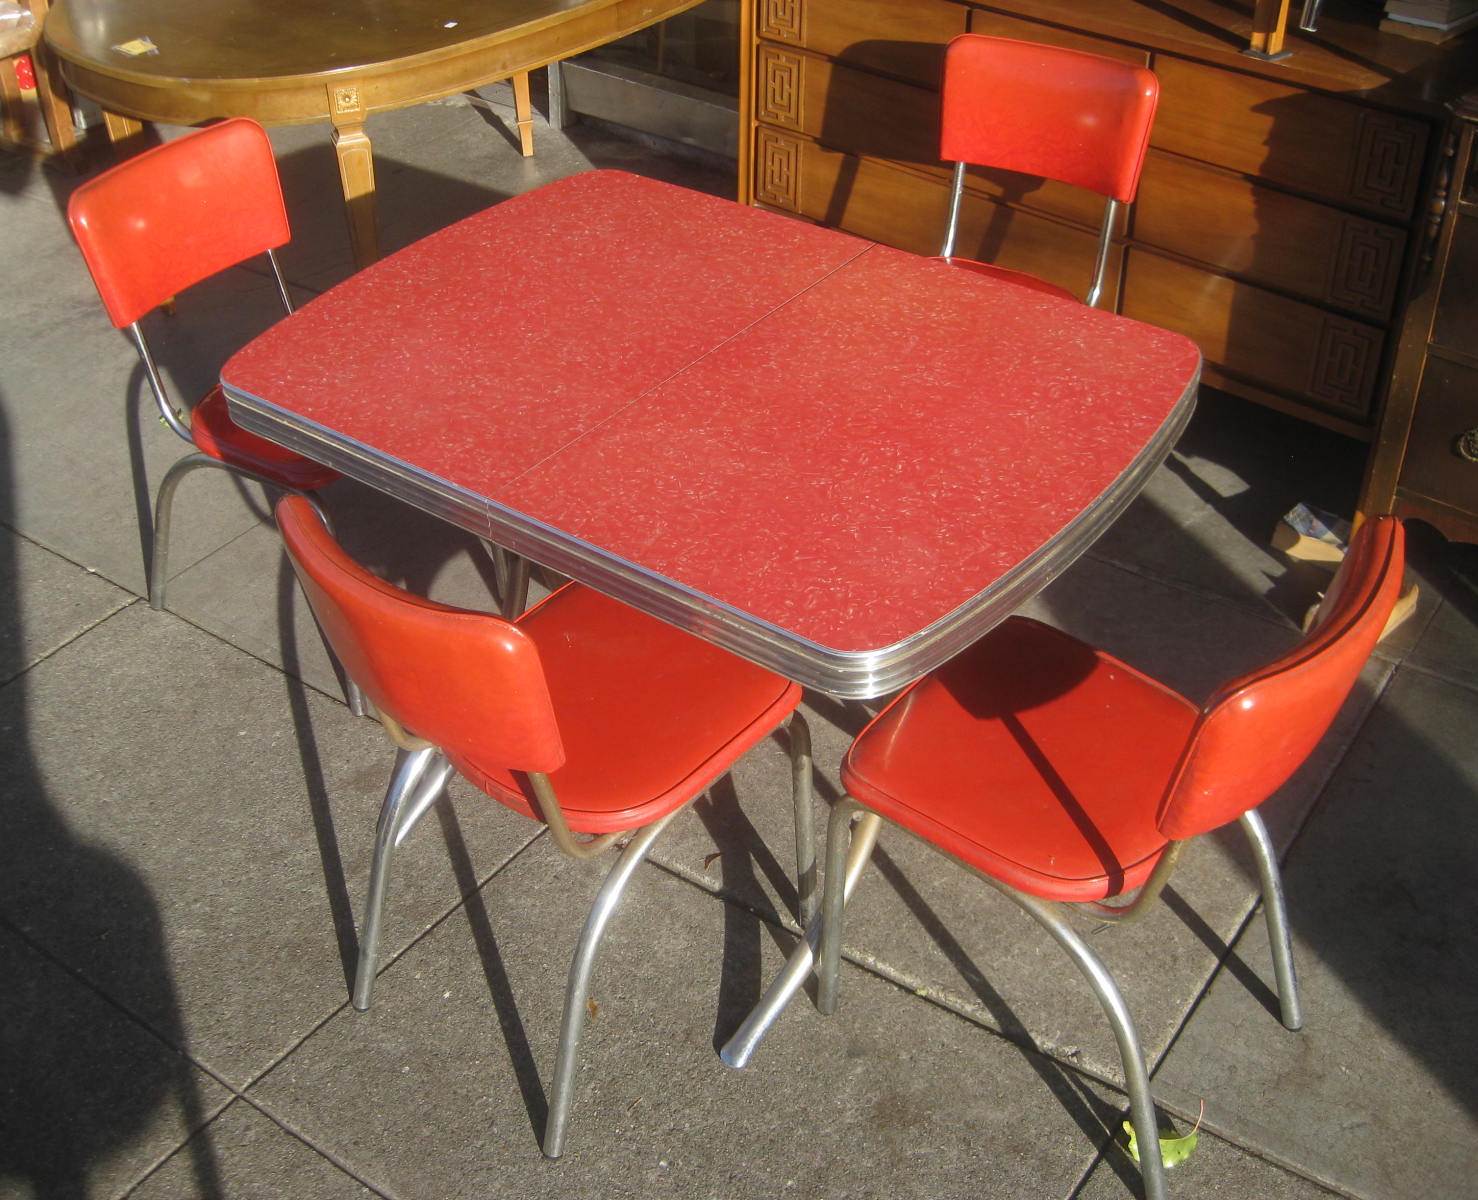 uhuru furniture collectibles sold red 1950s kitchen table and chairs 175. Black Bedroom Furniture Sets. Home Design Ideas